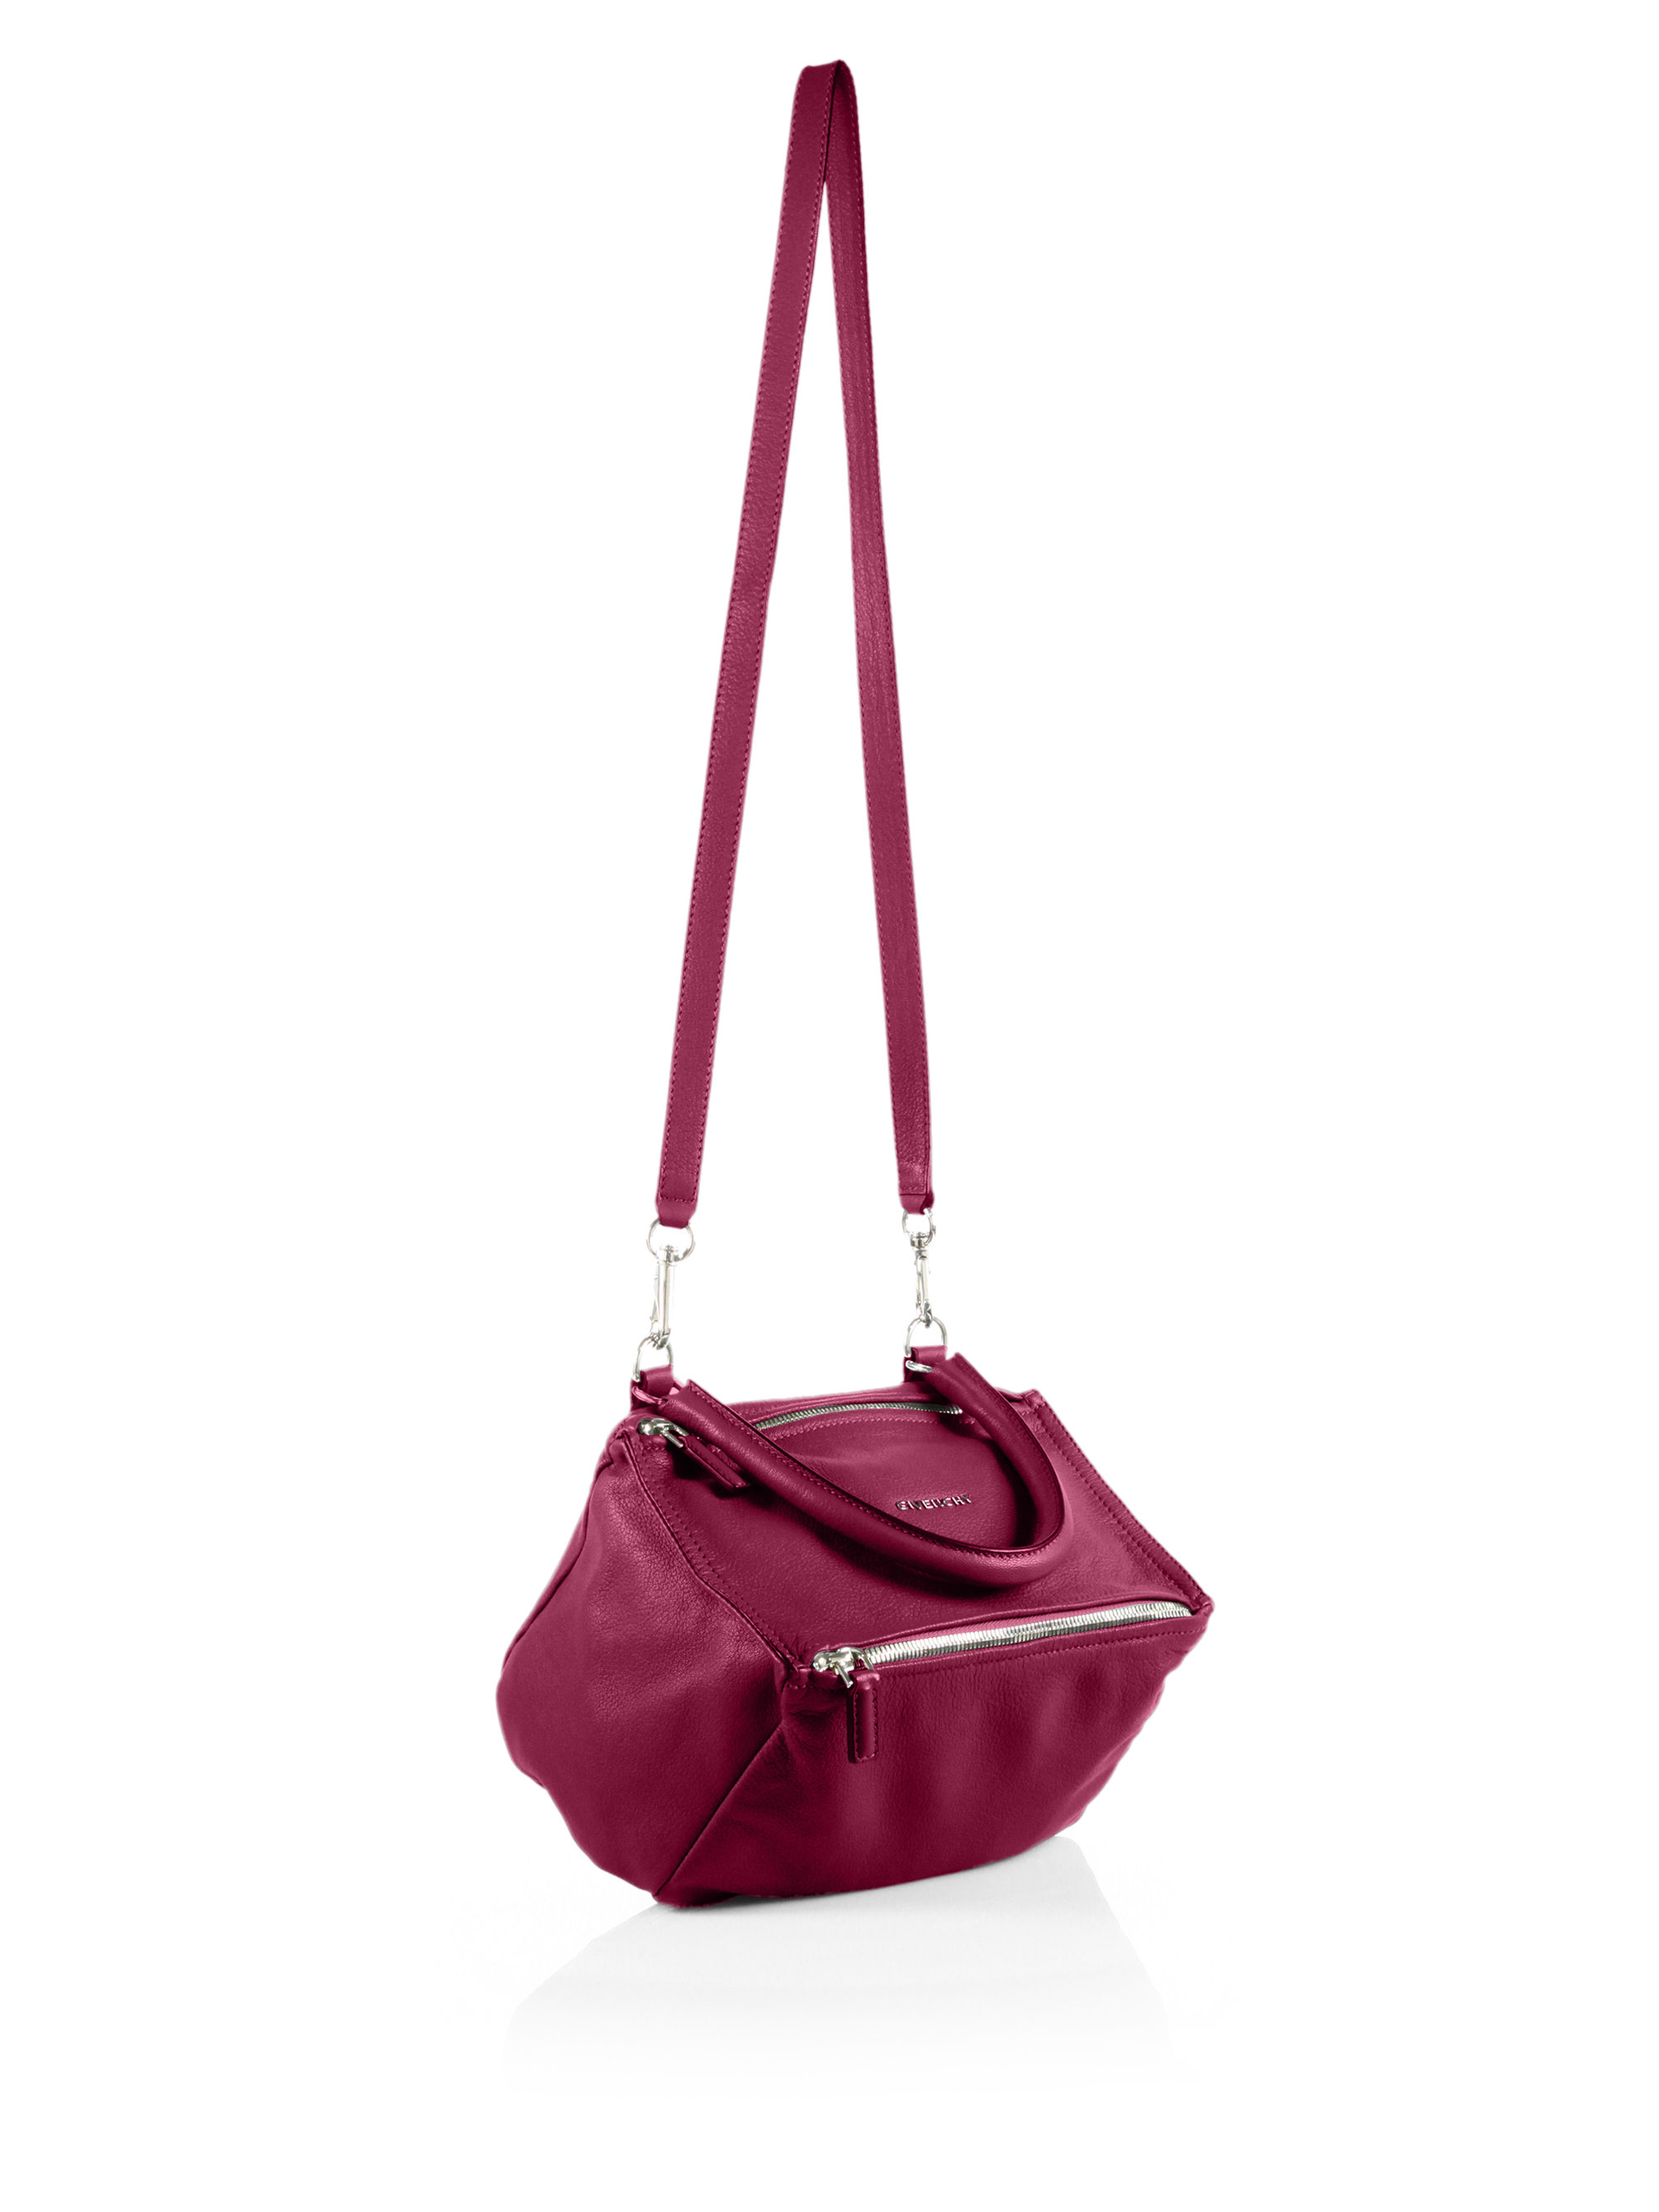 f6f47bf74d4 Lyst - Givenchy Pandora Small Shoulder Bag in Purple